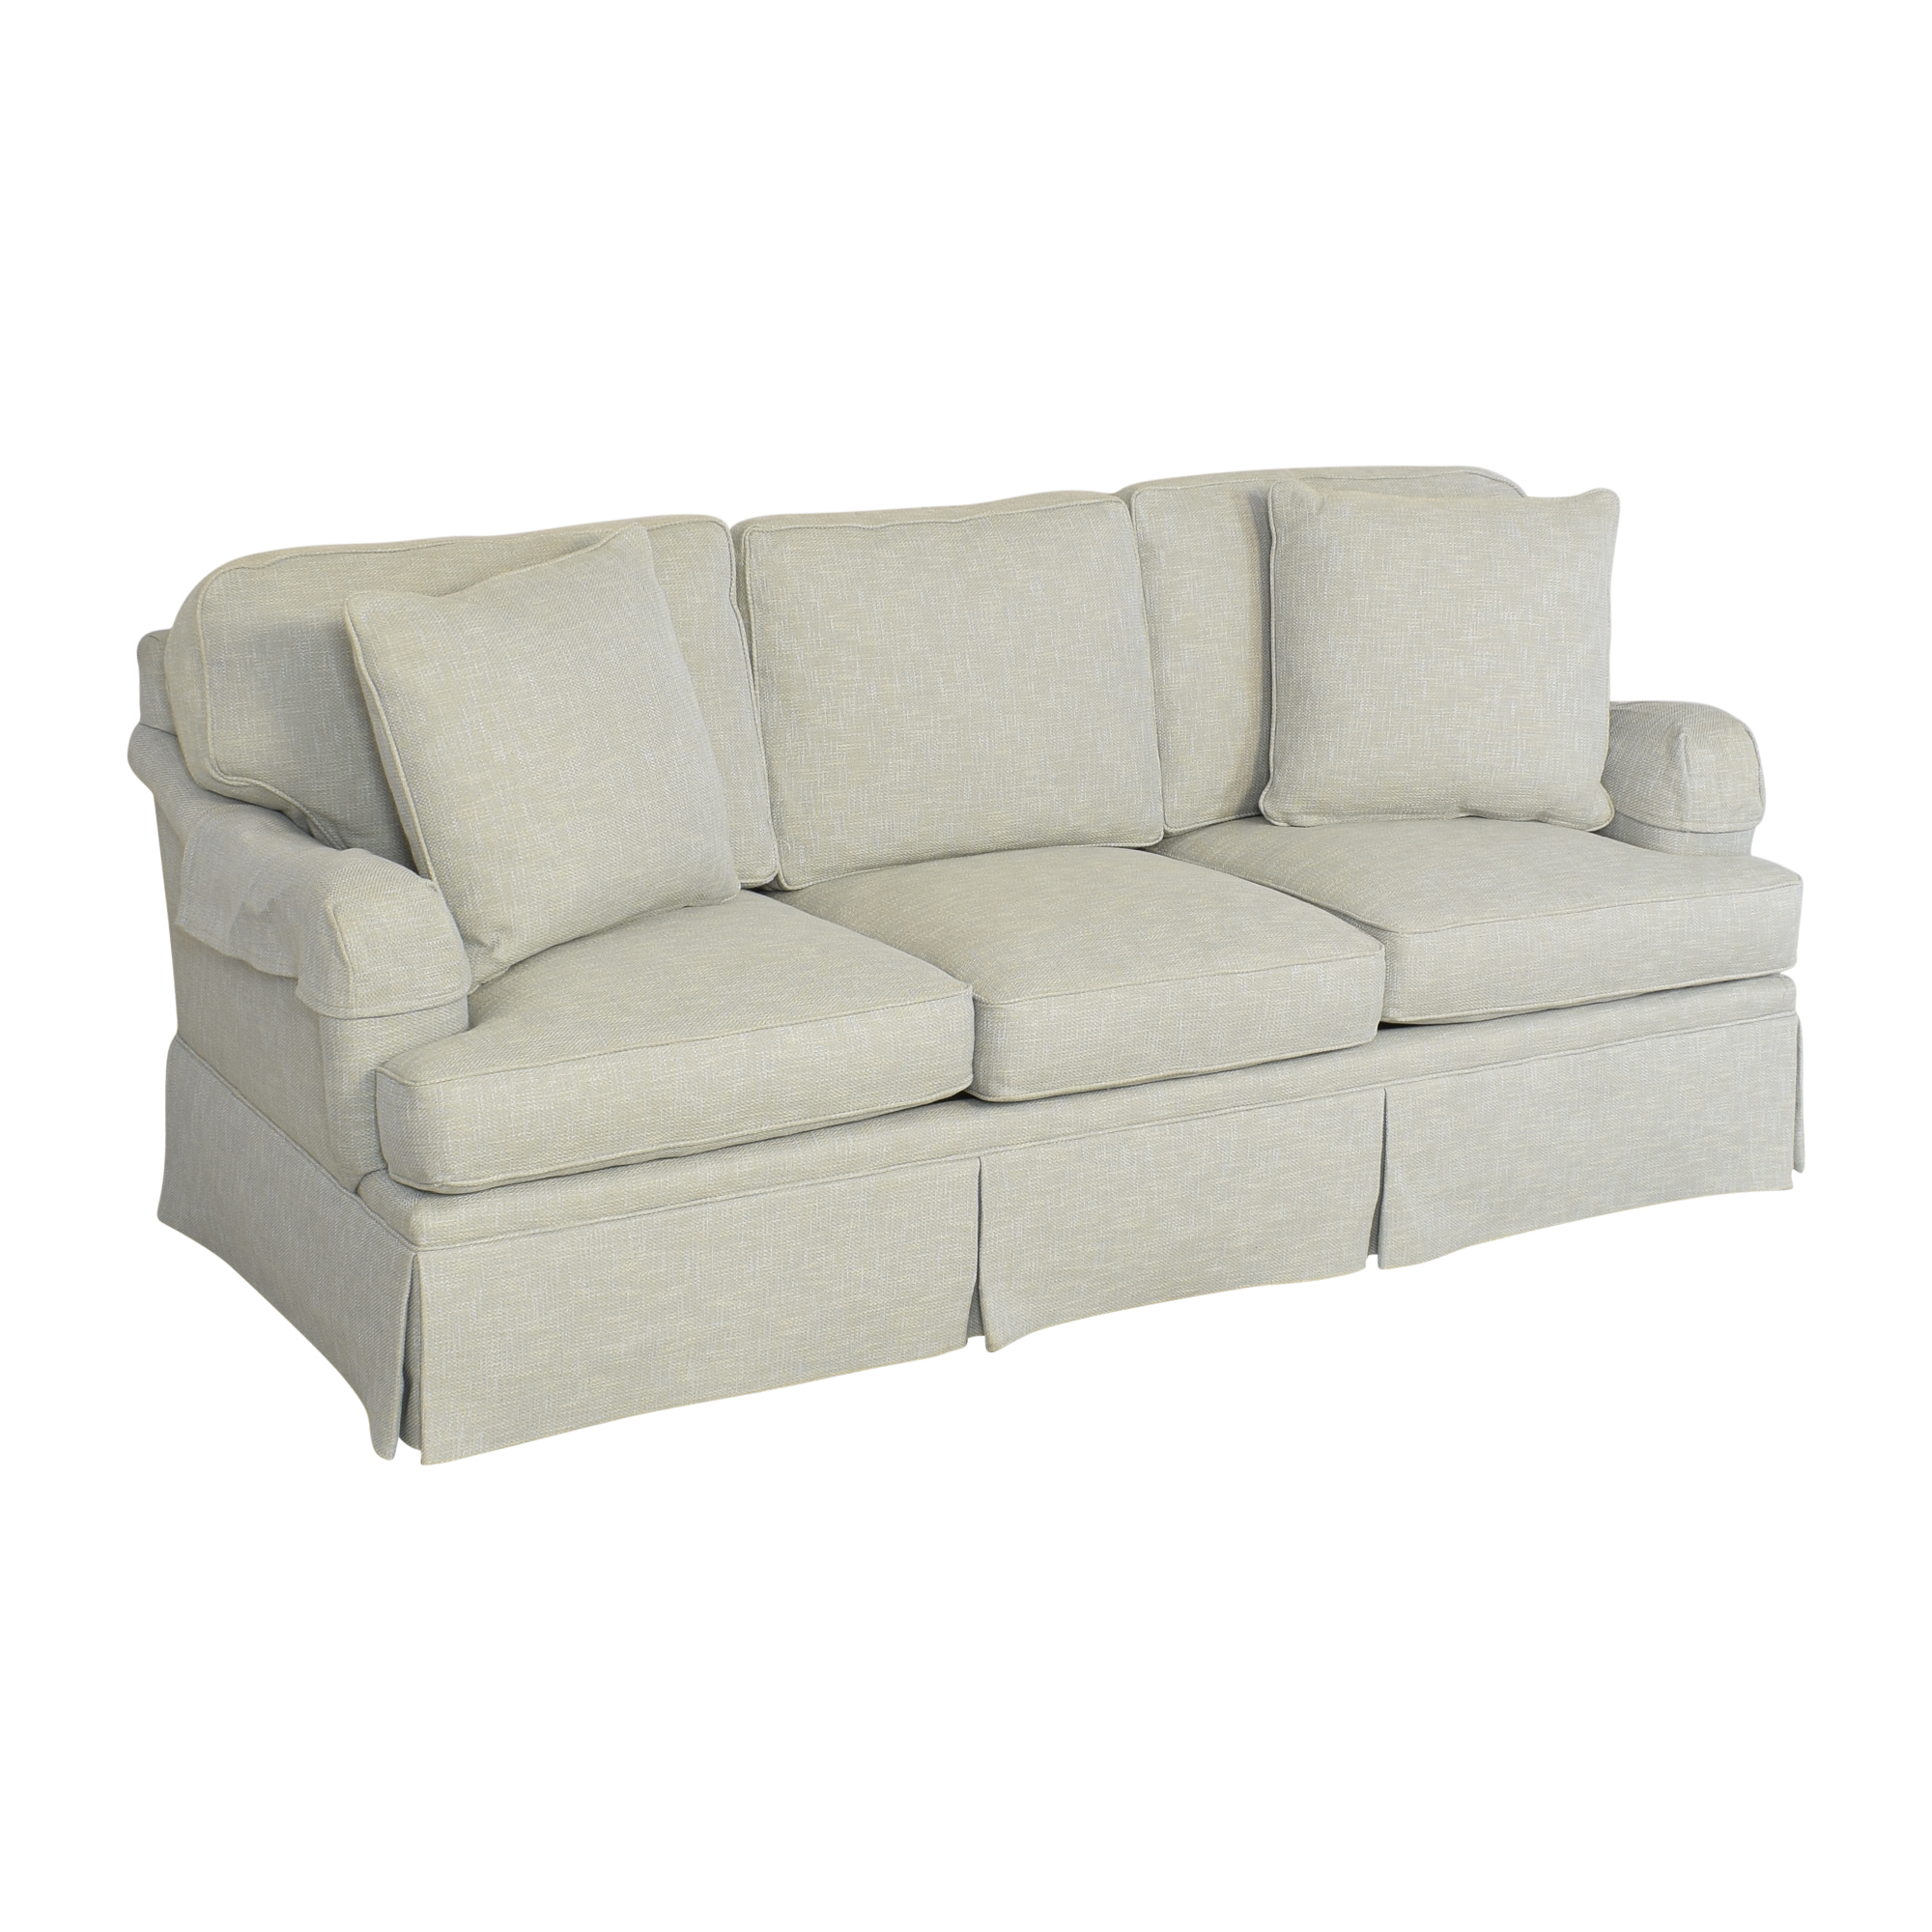 Henredon Furniture Henredon Upholstery Collection Sofa on sale